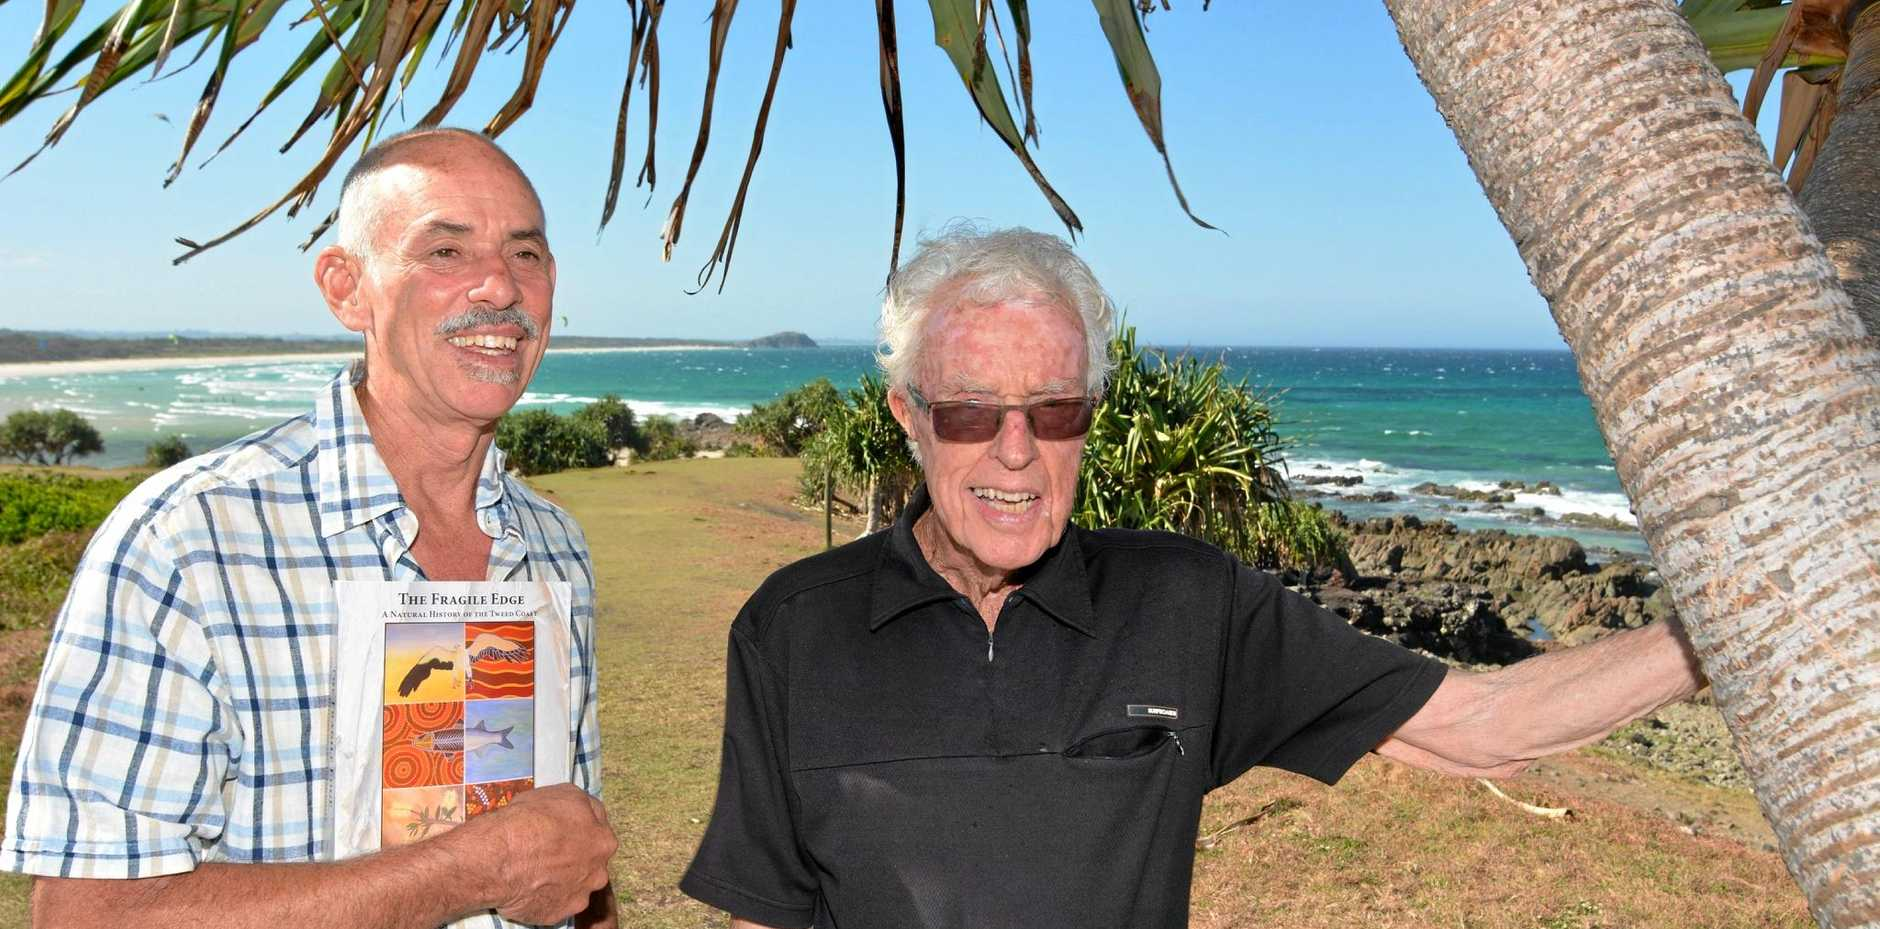 WONDER EXPERTS: The Fragile Edge editor Michael DeGood and David Rae, aged 88, the primary contributor to the Human Impacts chapter.